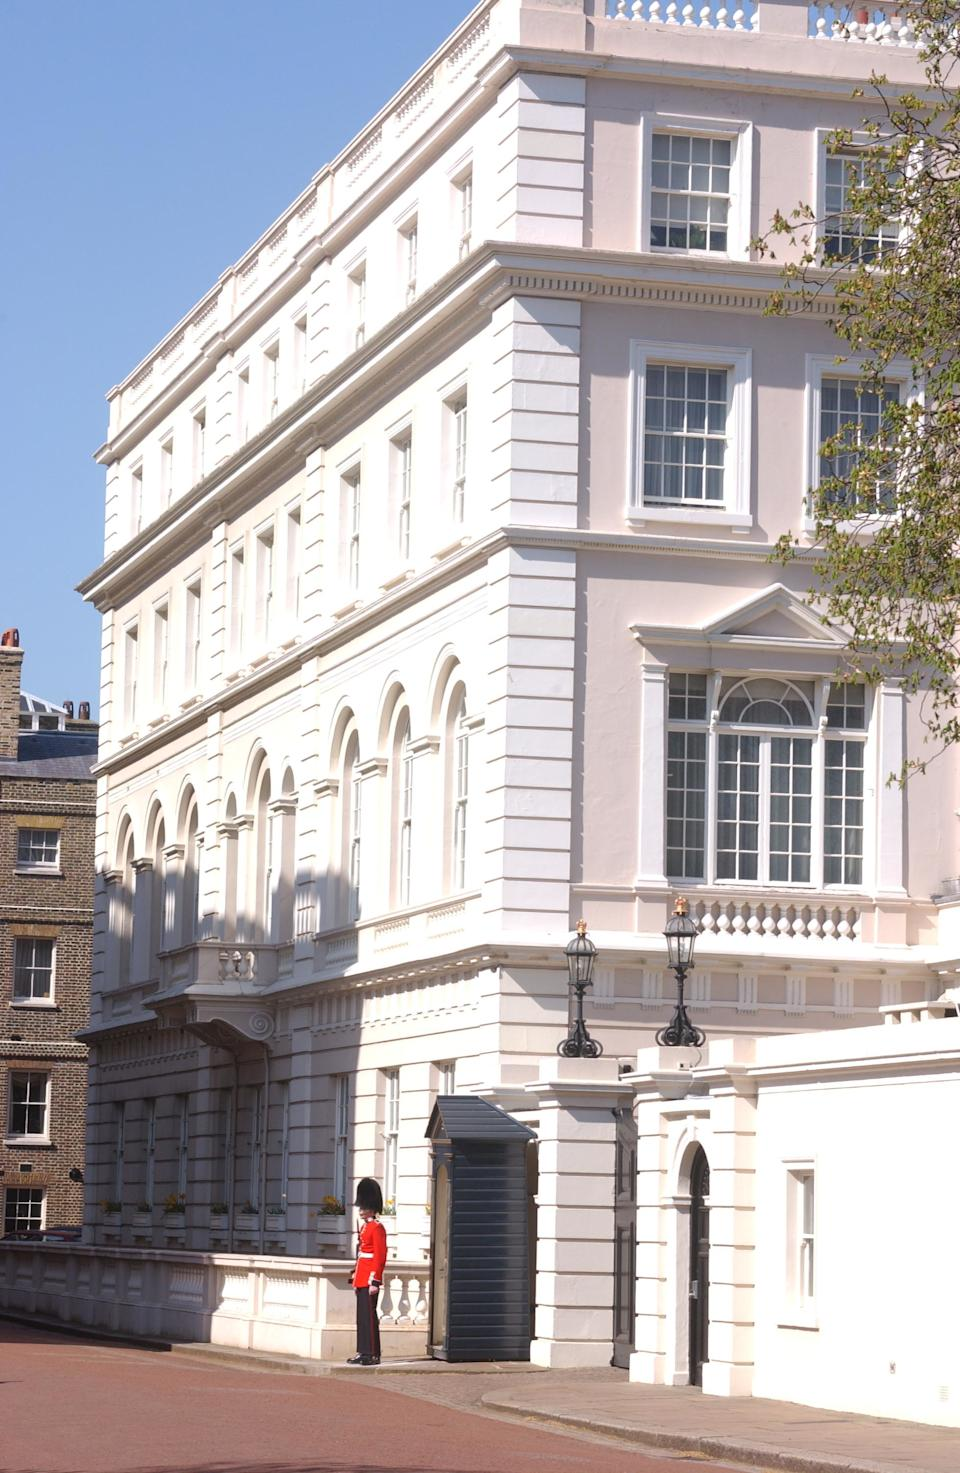 File photo: The Queen Mother's former residence, Clarence House. (Photo by rune hellestad/Corbis via Getty Images)